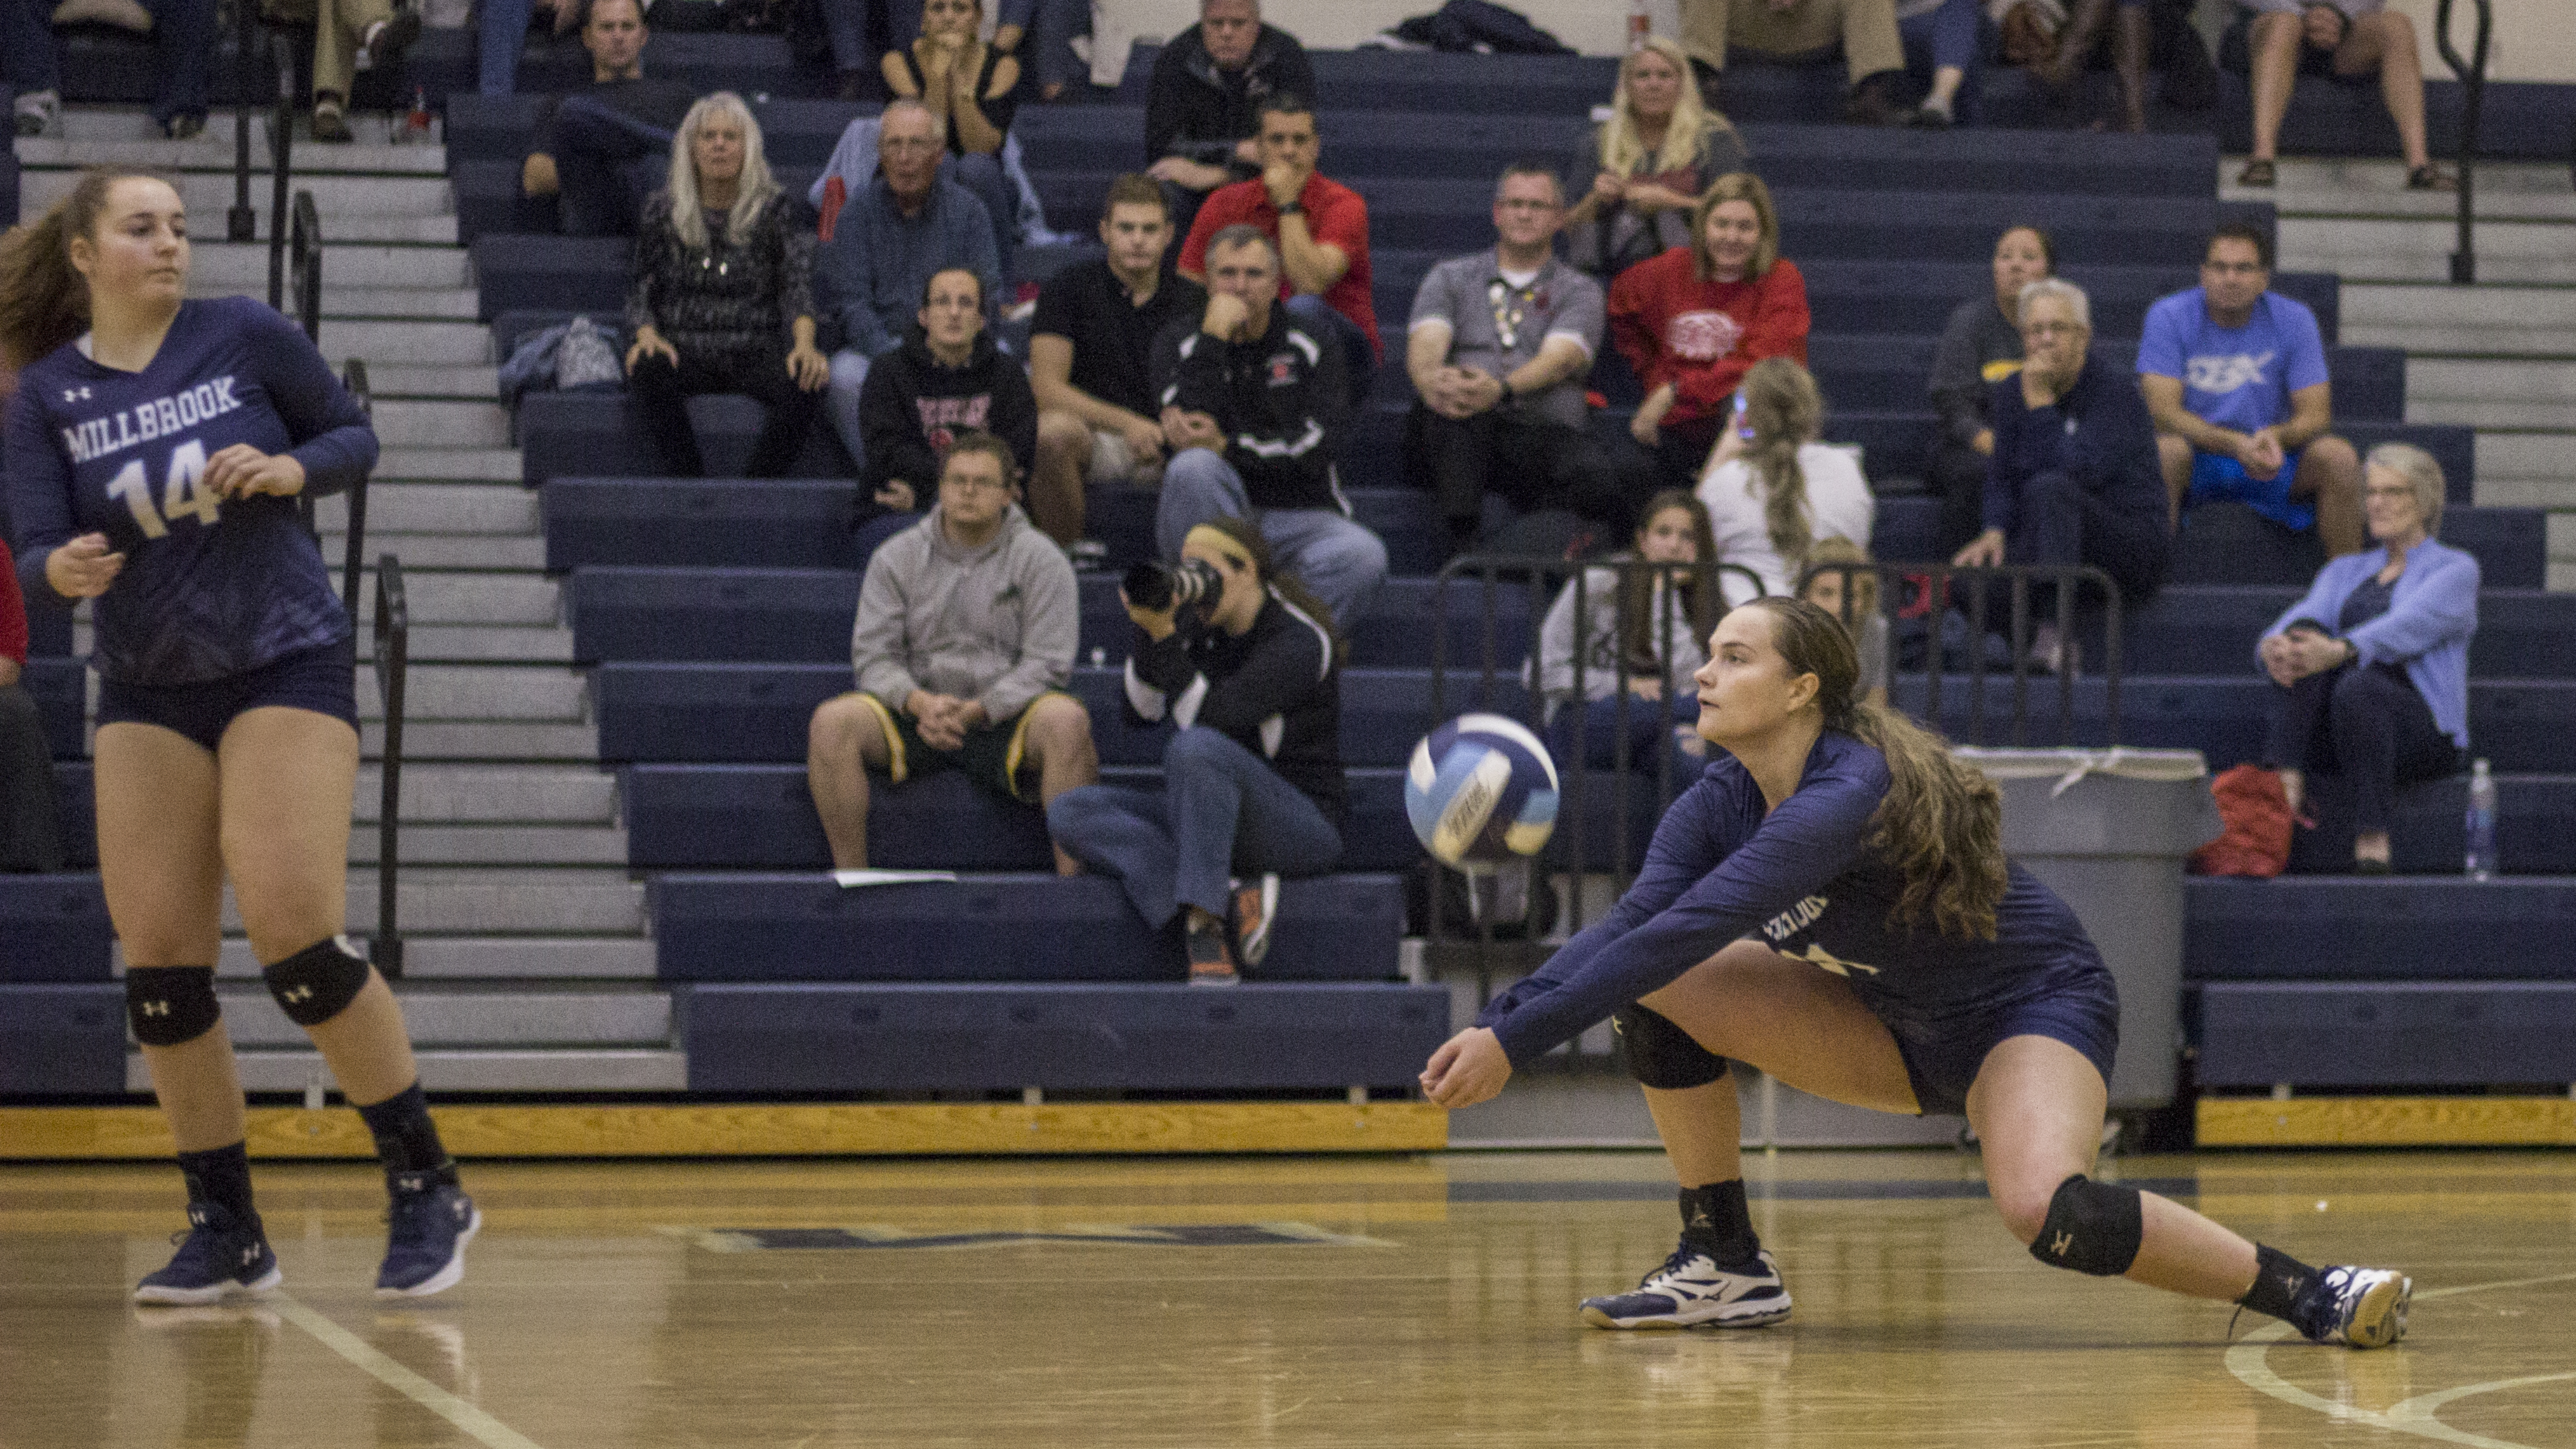 All the Way to State Semi-Final: the Volleyball Team Tells All!